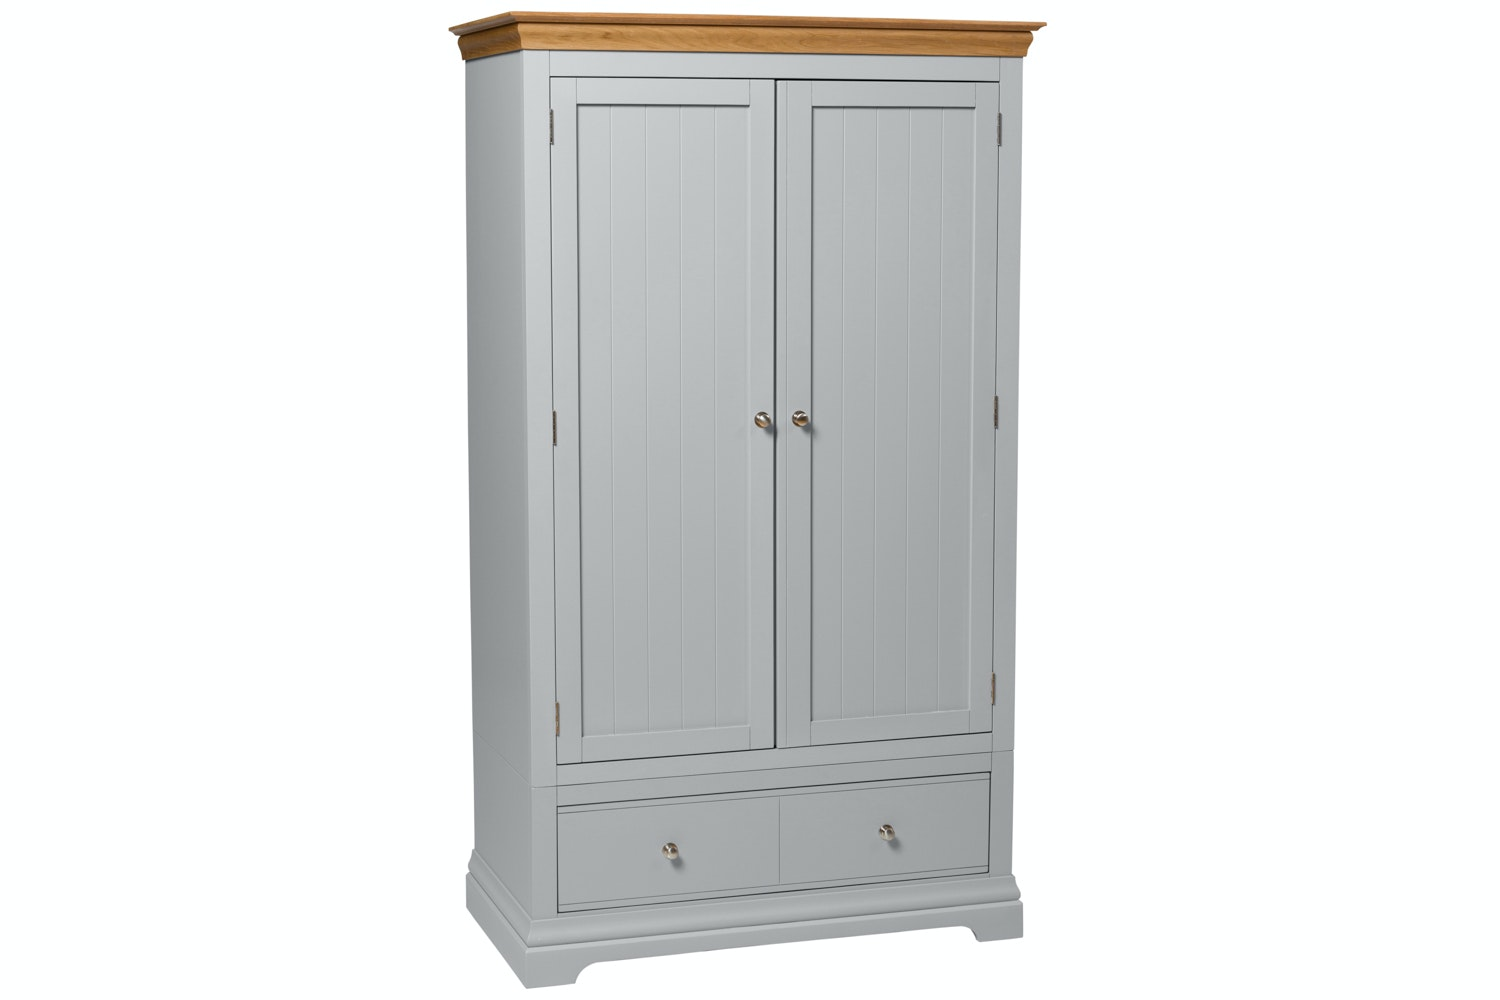 Ascott 2 Door Wardrobe | Colourtrend